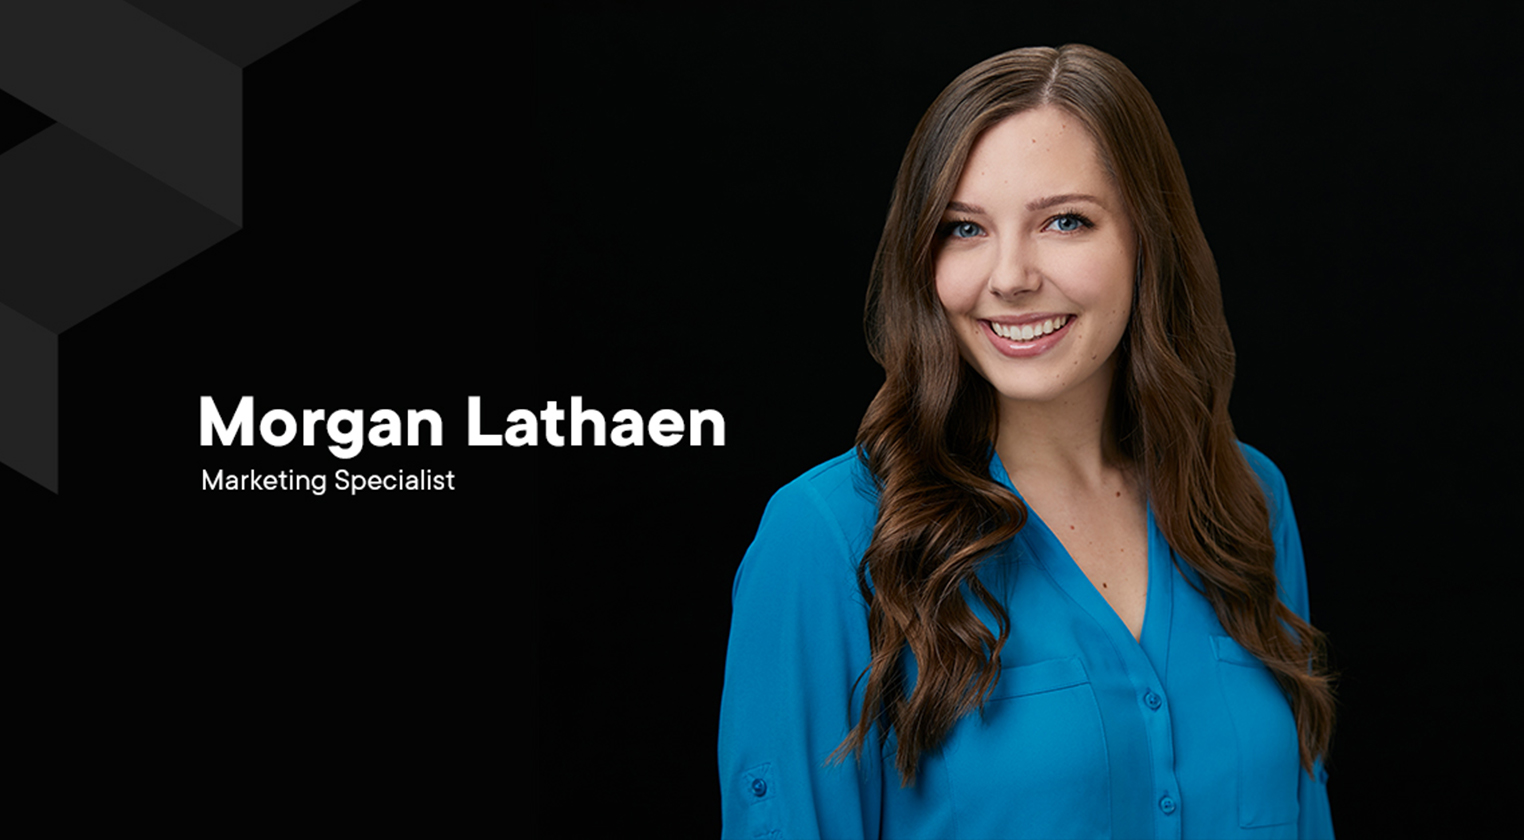 Meet Morgan Lathaen